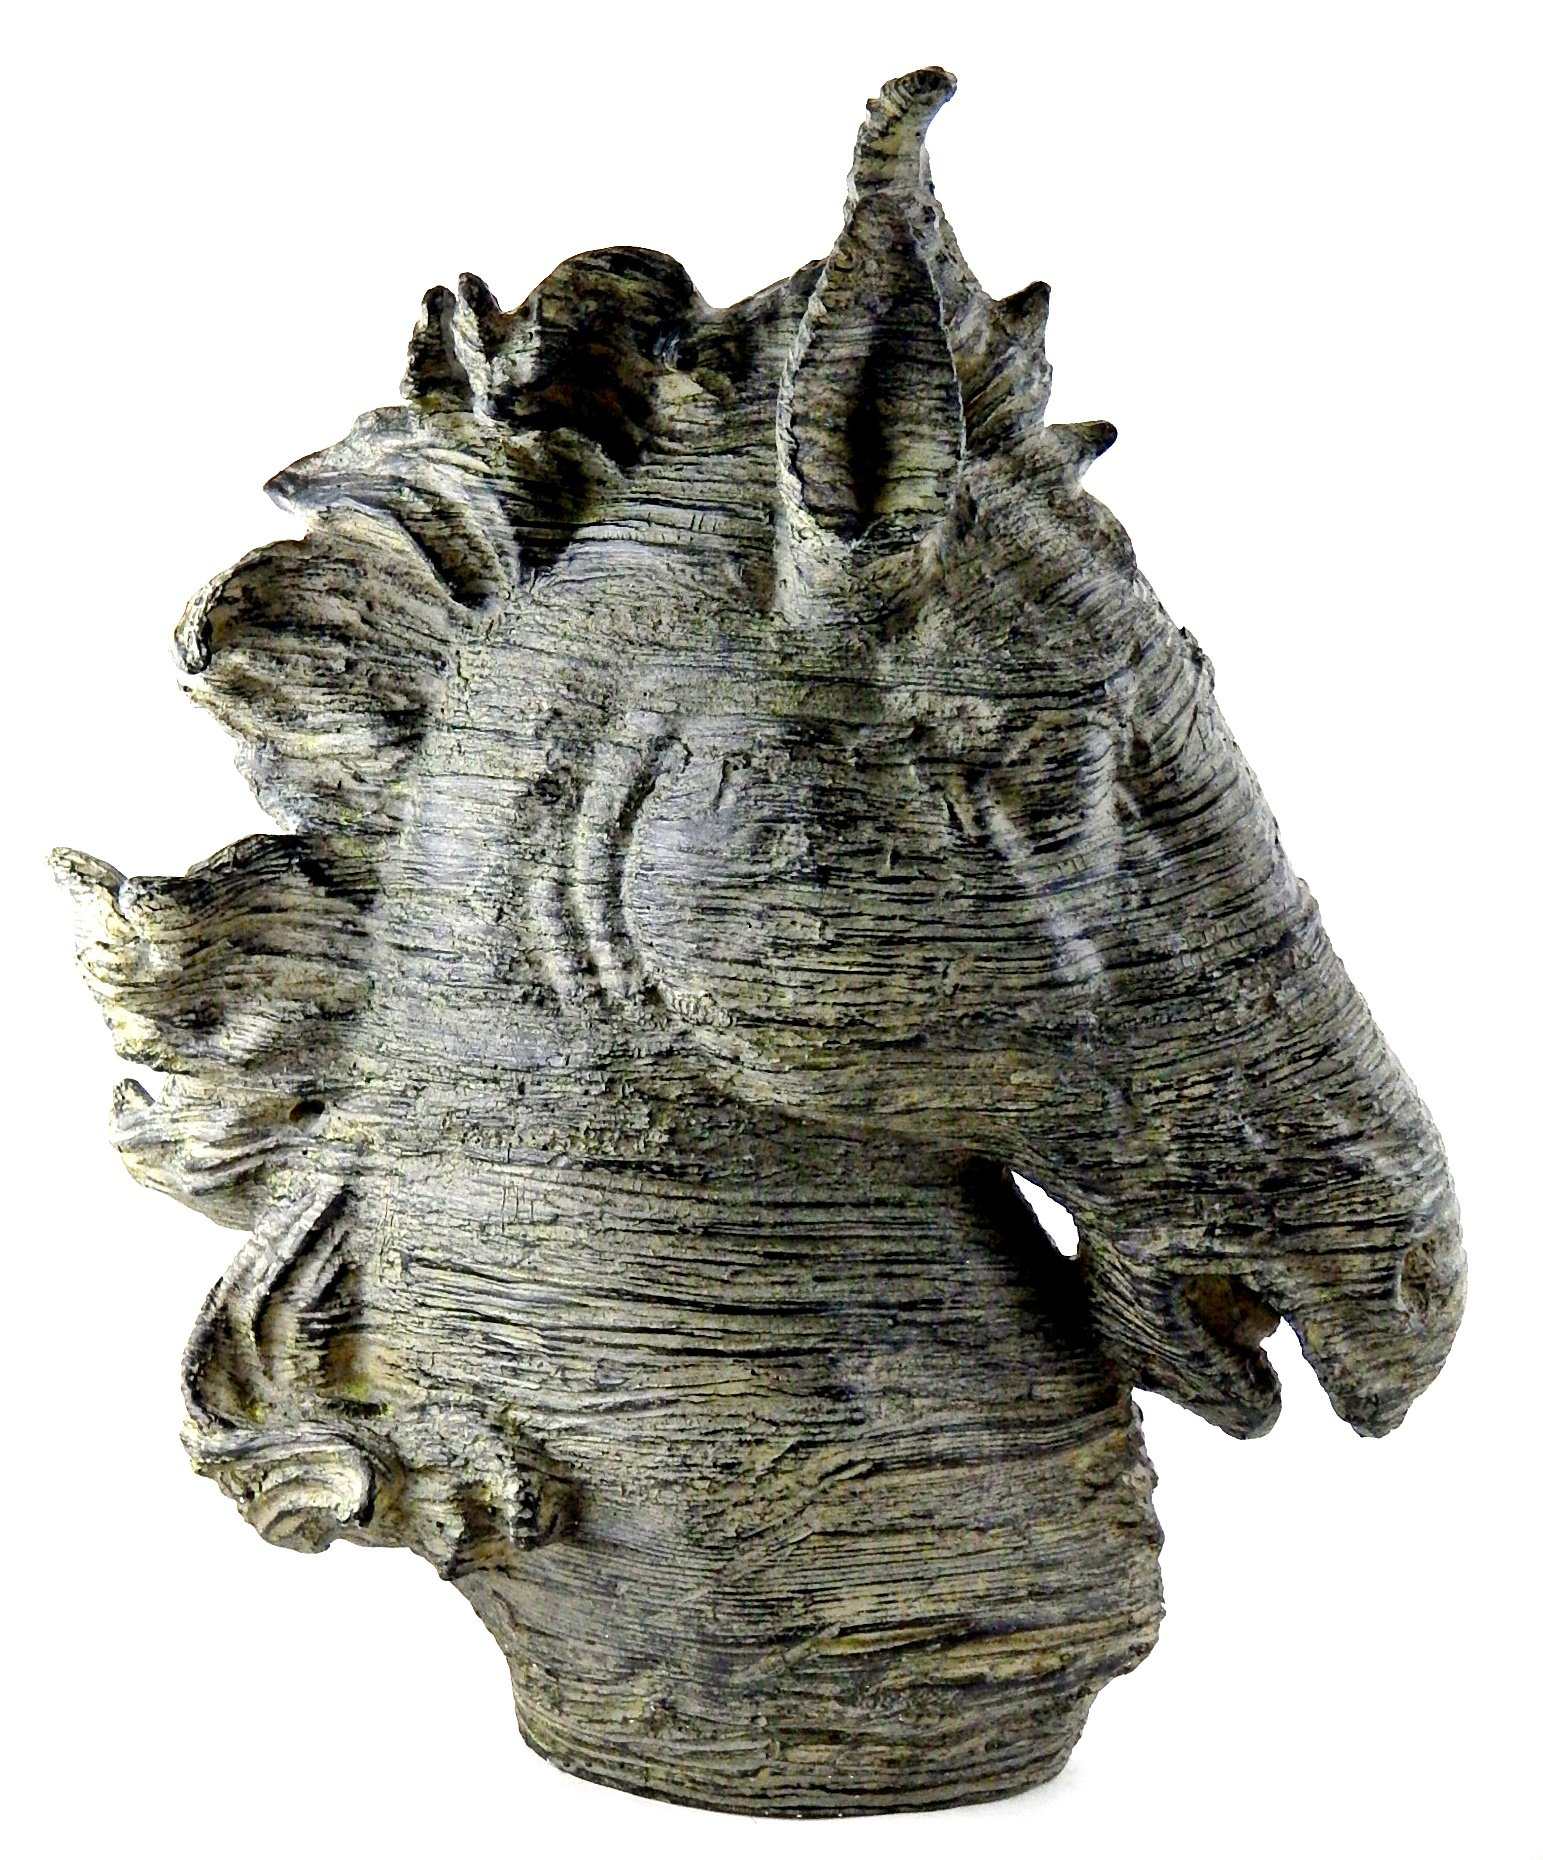 Bellaa 26065 Spirit Horse Head Bust Large Bronze Color Sculpture Museum Quality 16'' Inches by Bellaa